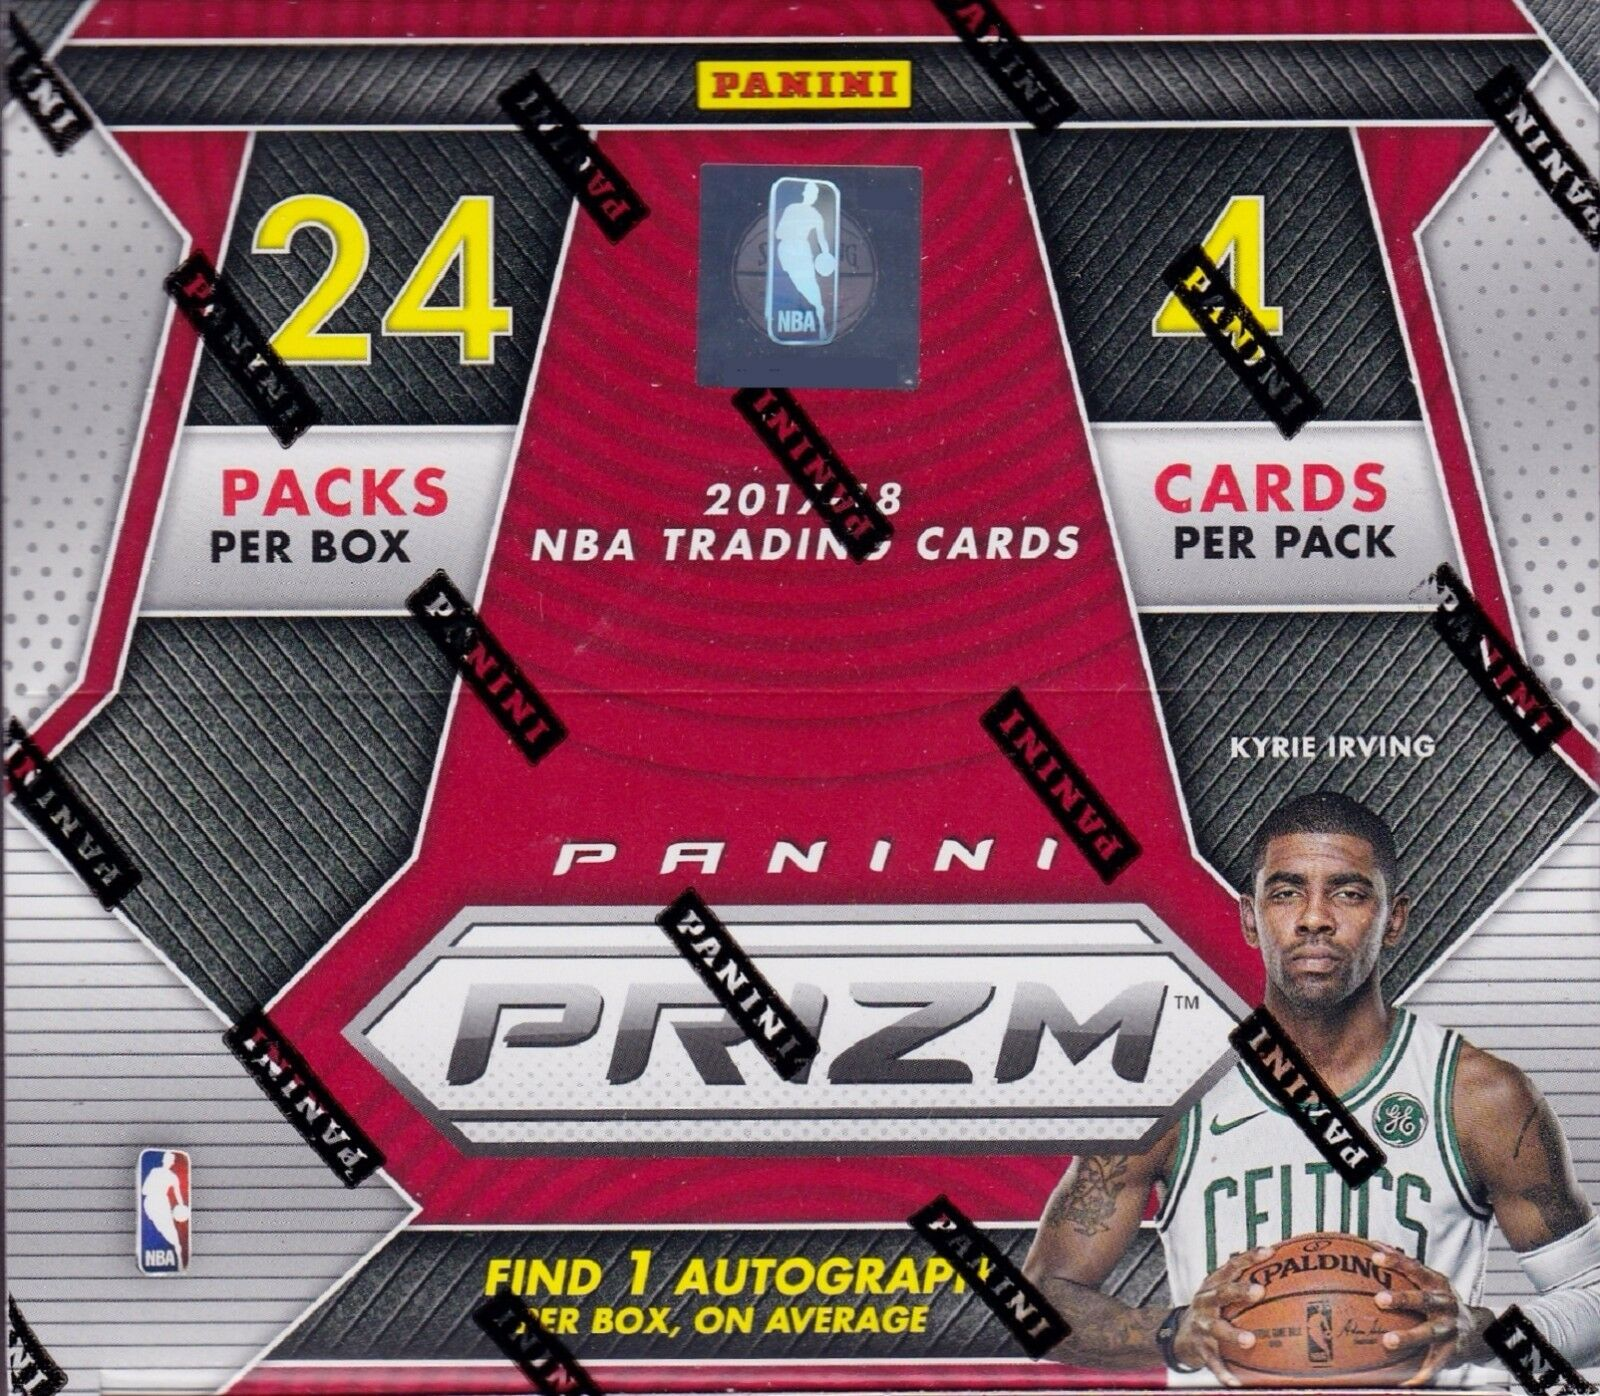 Купить 2017-18 Panini Prizm Basketball sealed retail box 24 packs 4 NBA cards 1 auto